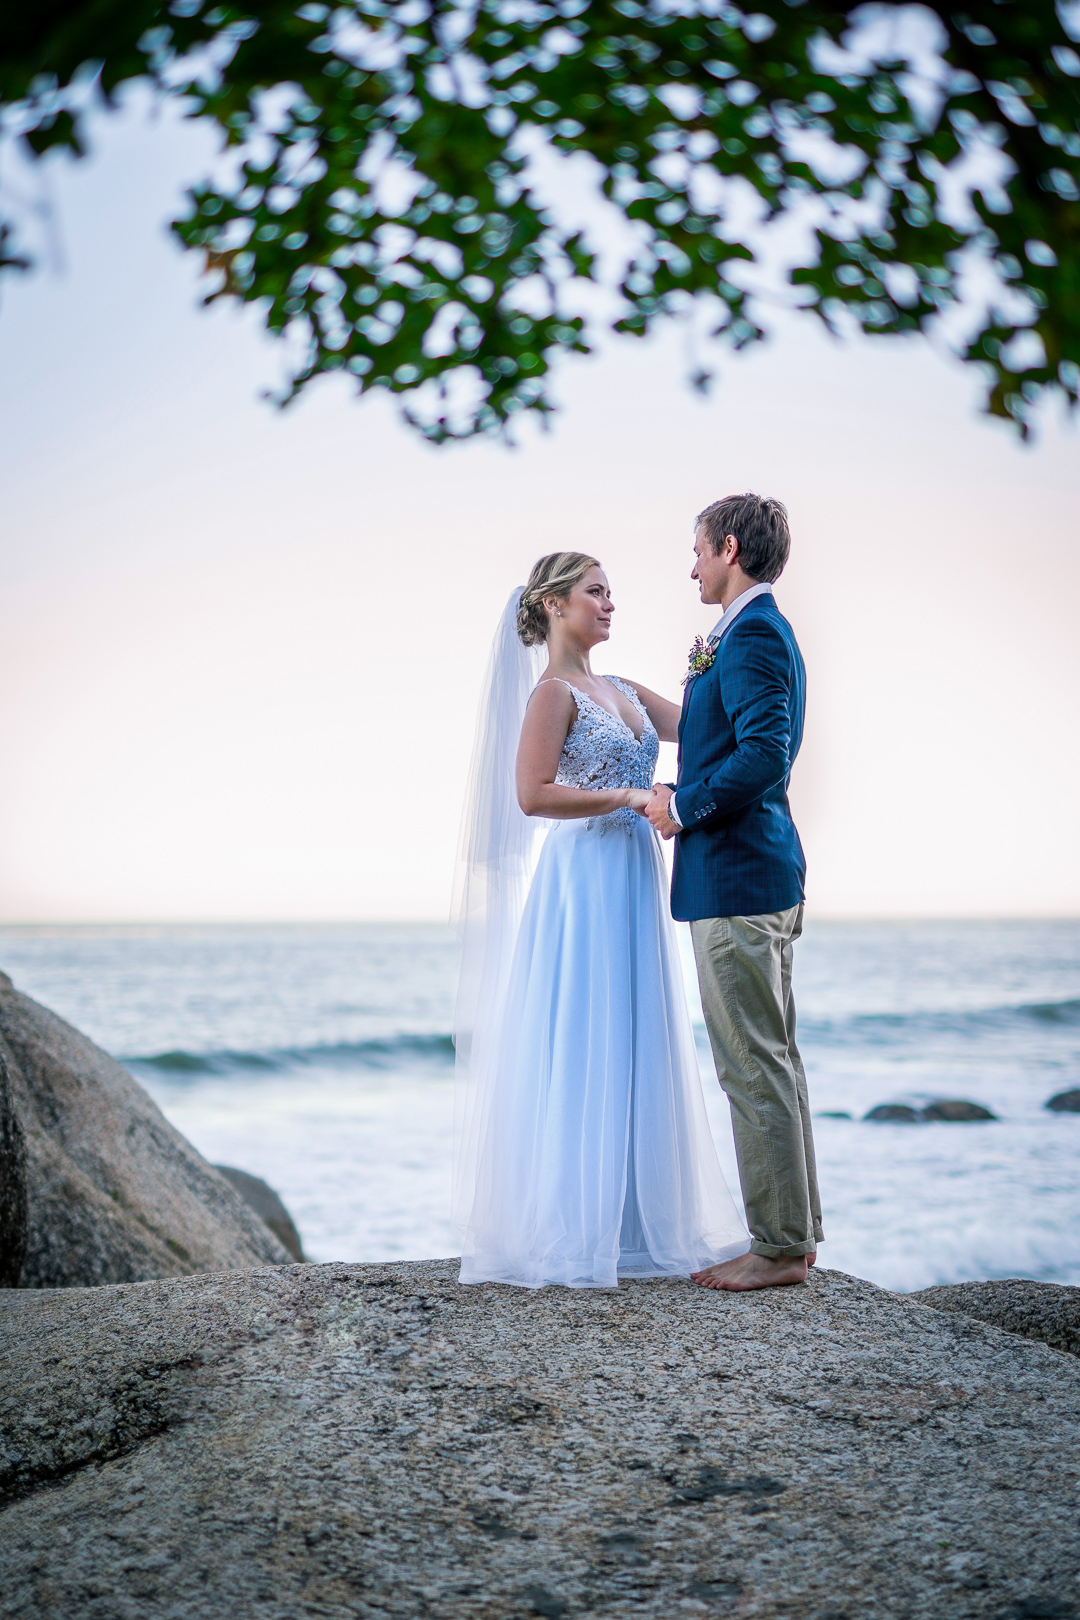 Elopement Photography Cape Town Clifton by Cape Image Co. (small file)-29.jpg